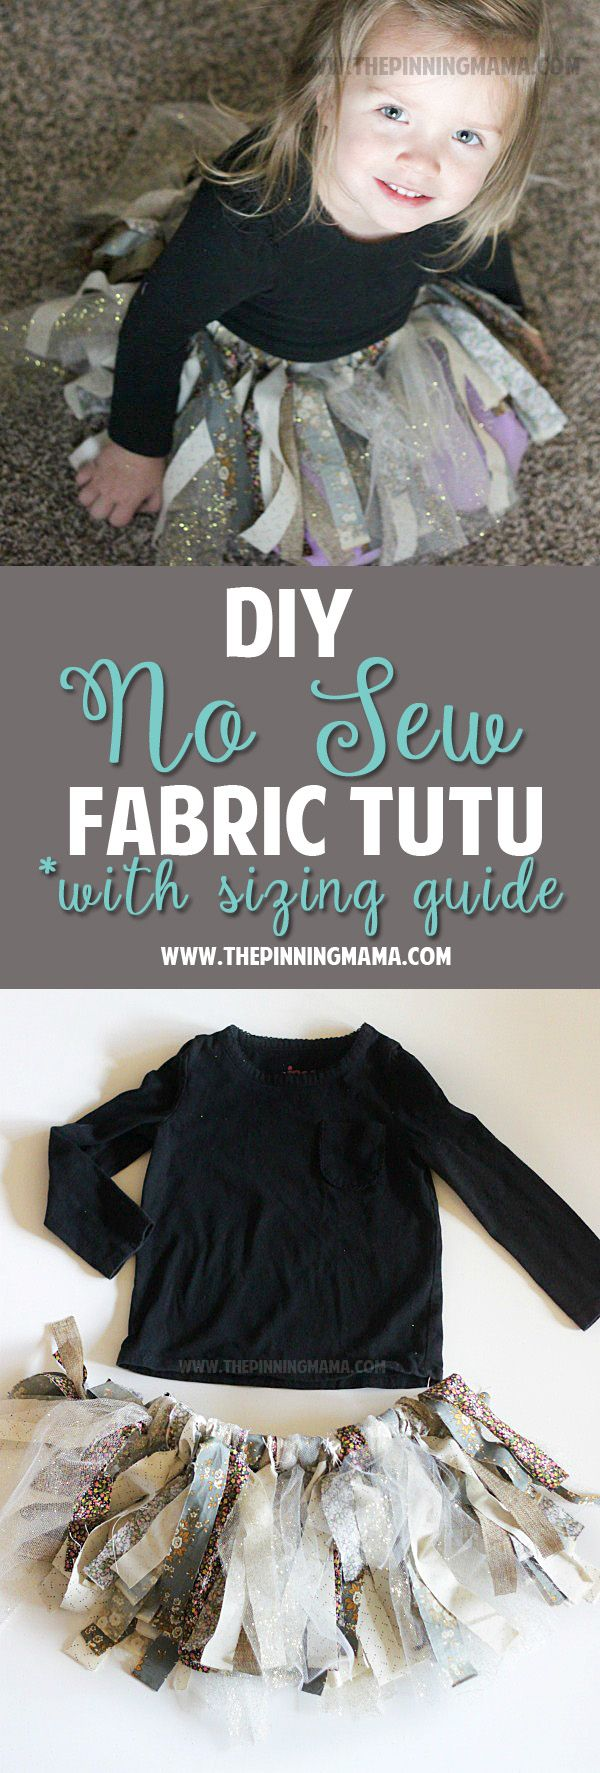 DIY No Sew Fabric Tutu Dress